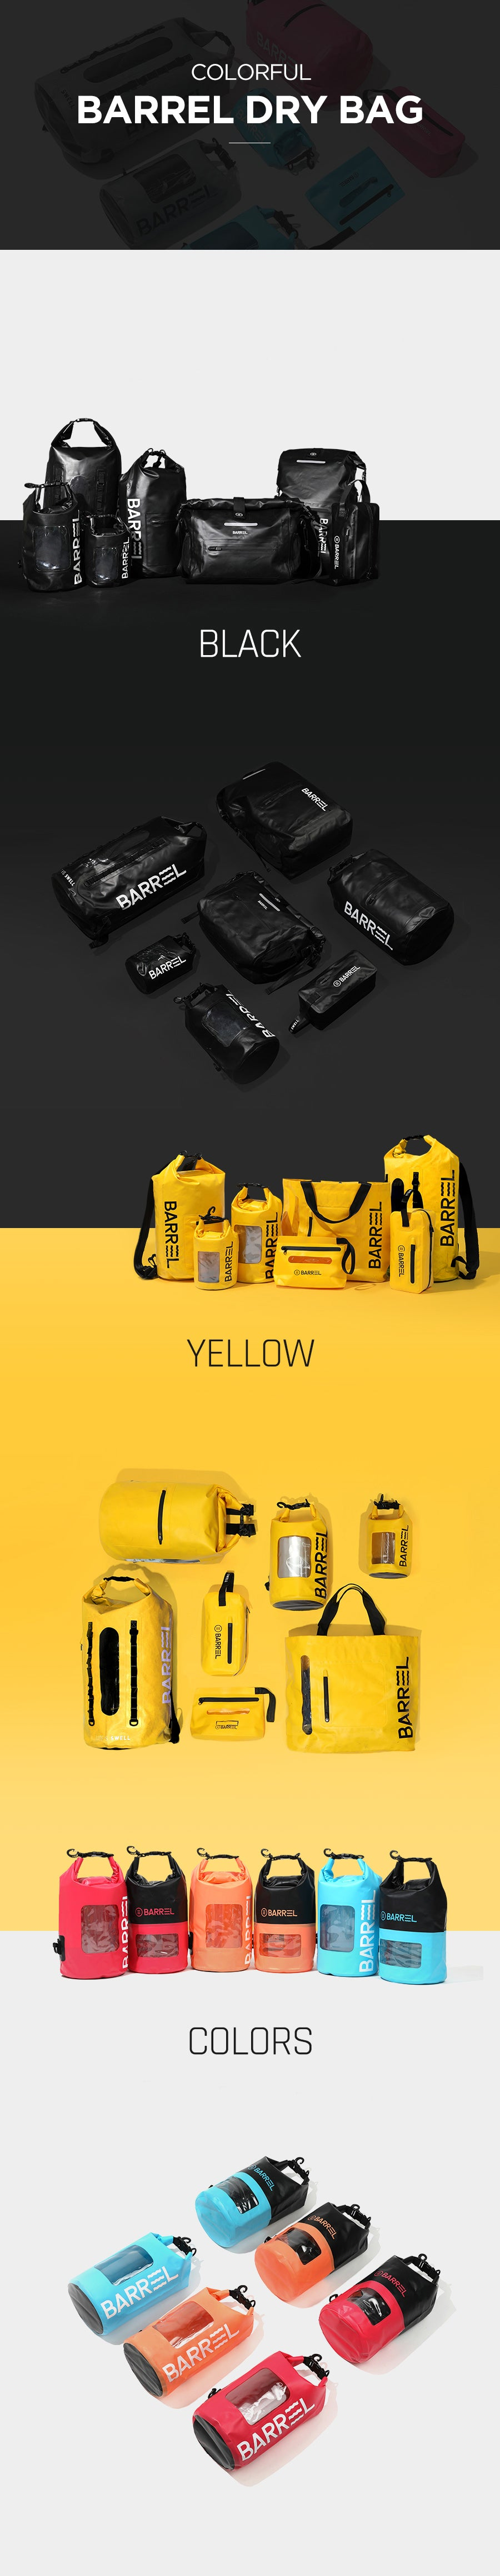 Barrel Dry Hand Pouch-YELLOW_image2